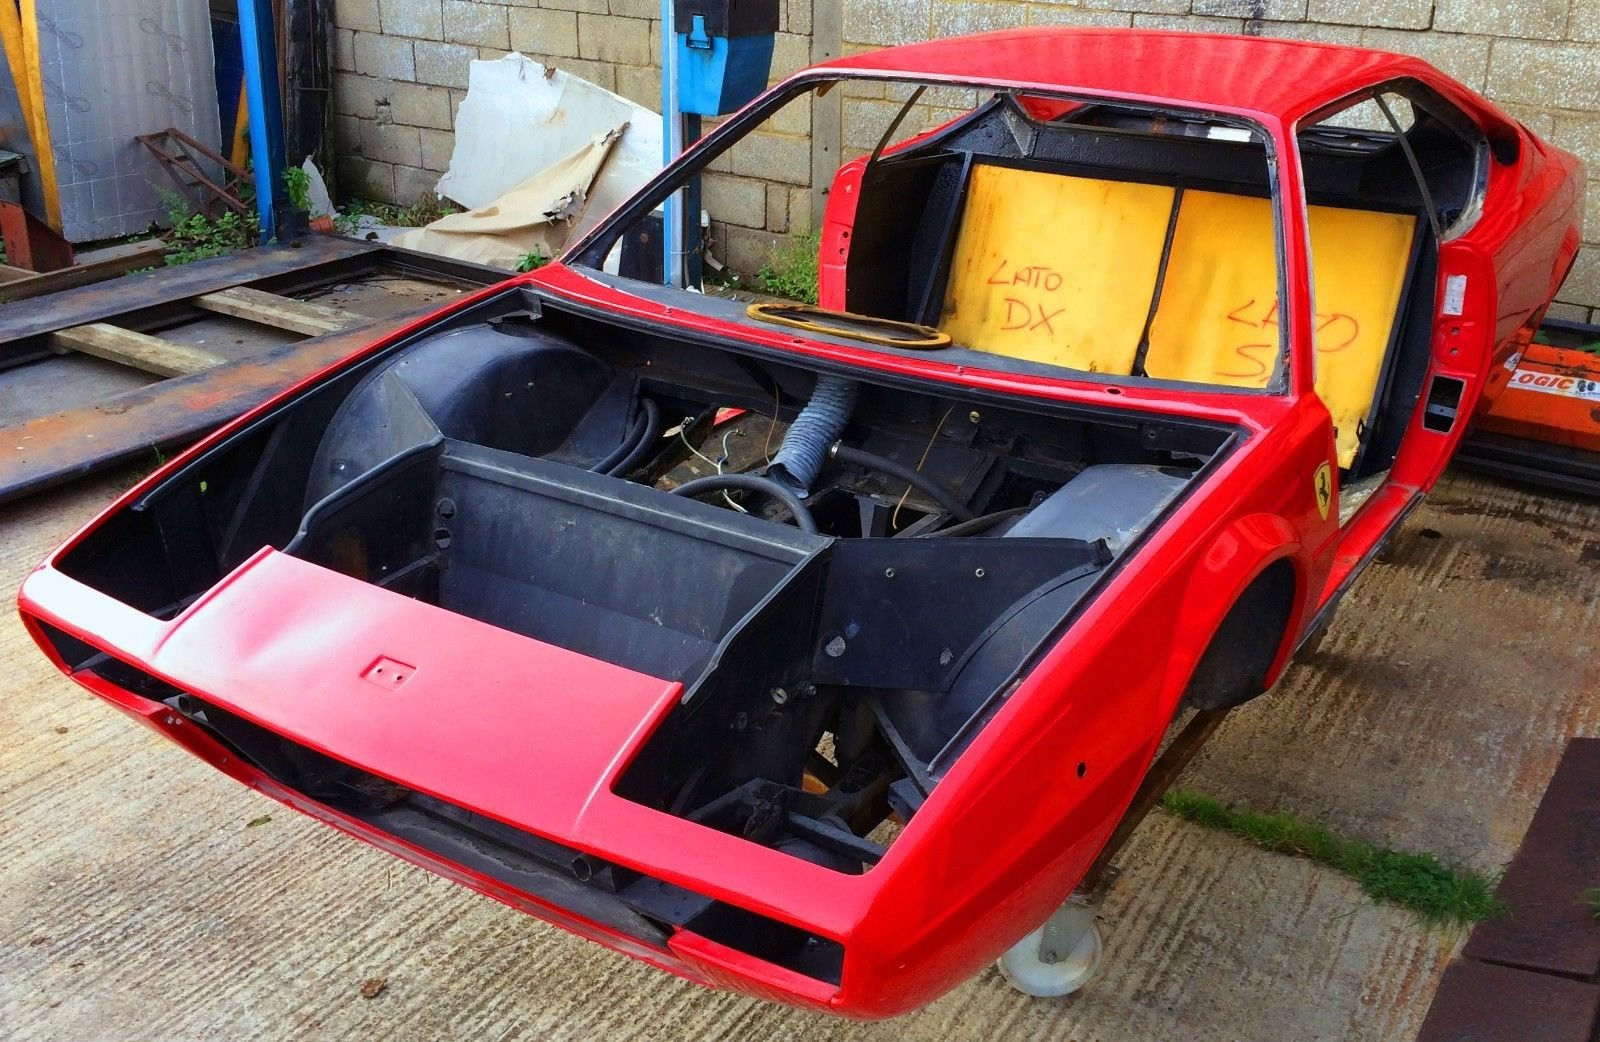 1975 Ferrari Dino 208 GT4 Body and Chassis LHD For Sale (picture 2 of 6)